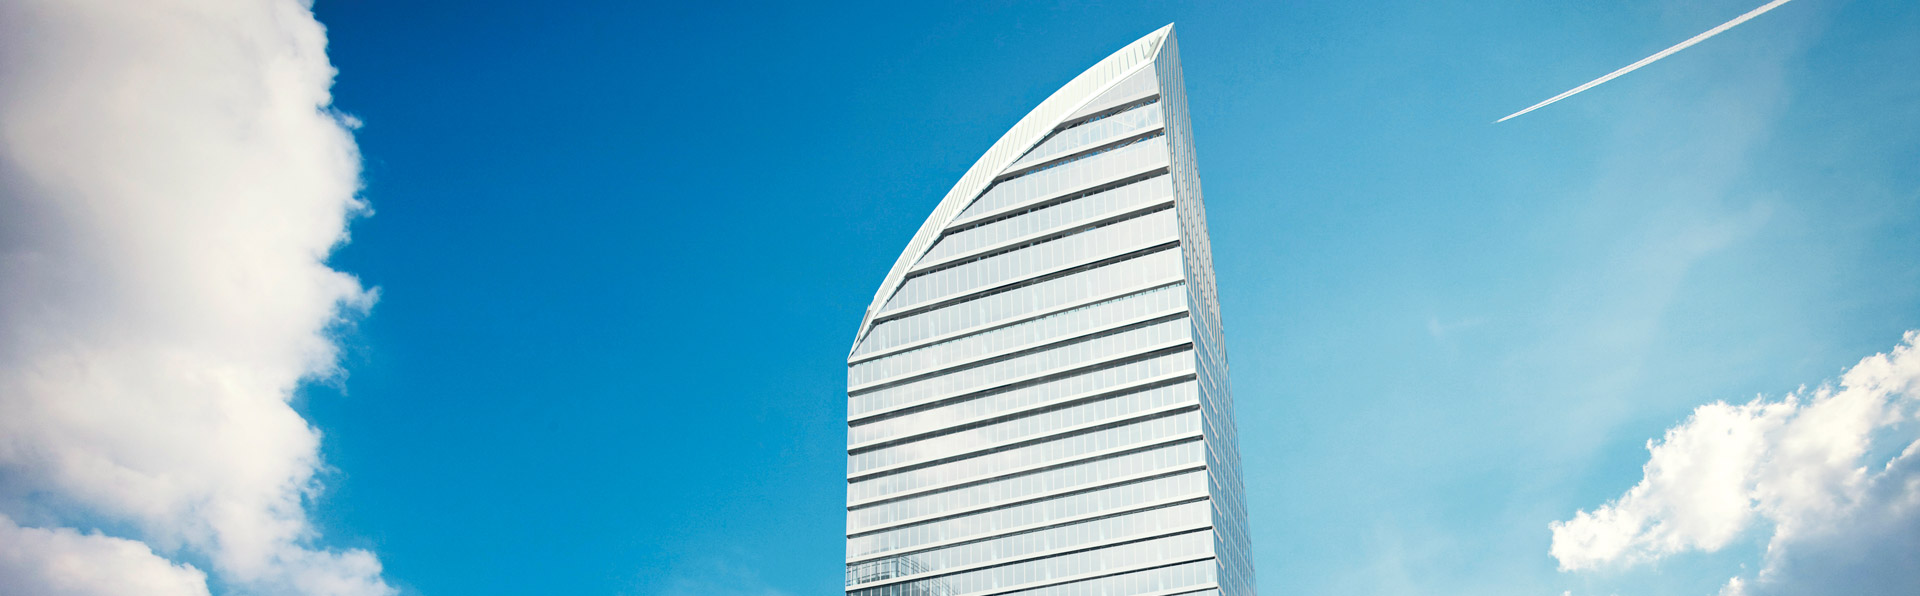 cmb-construction-edilizia-torre-libeskind-tower